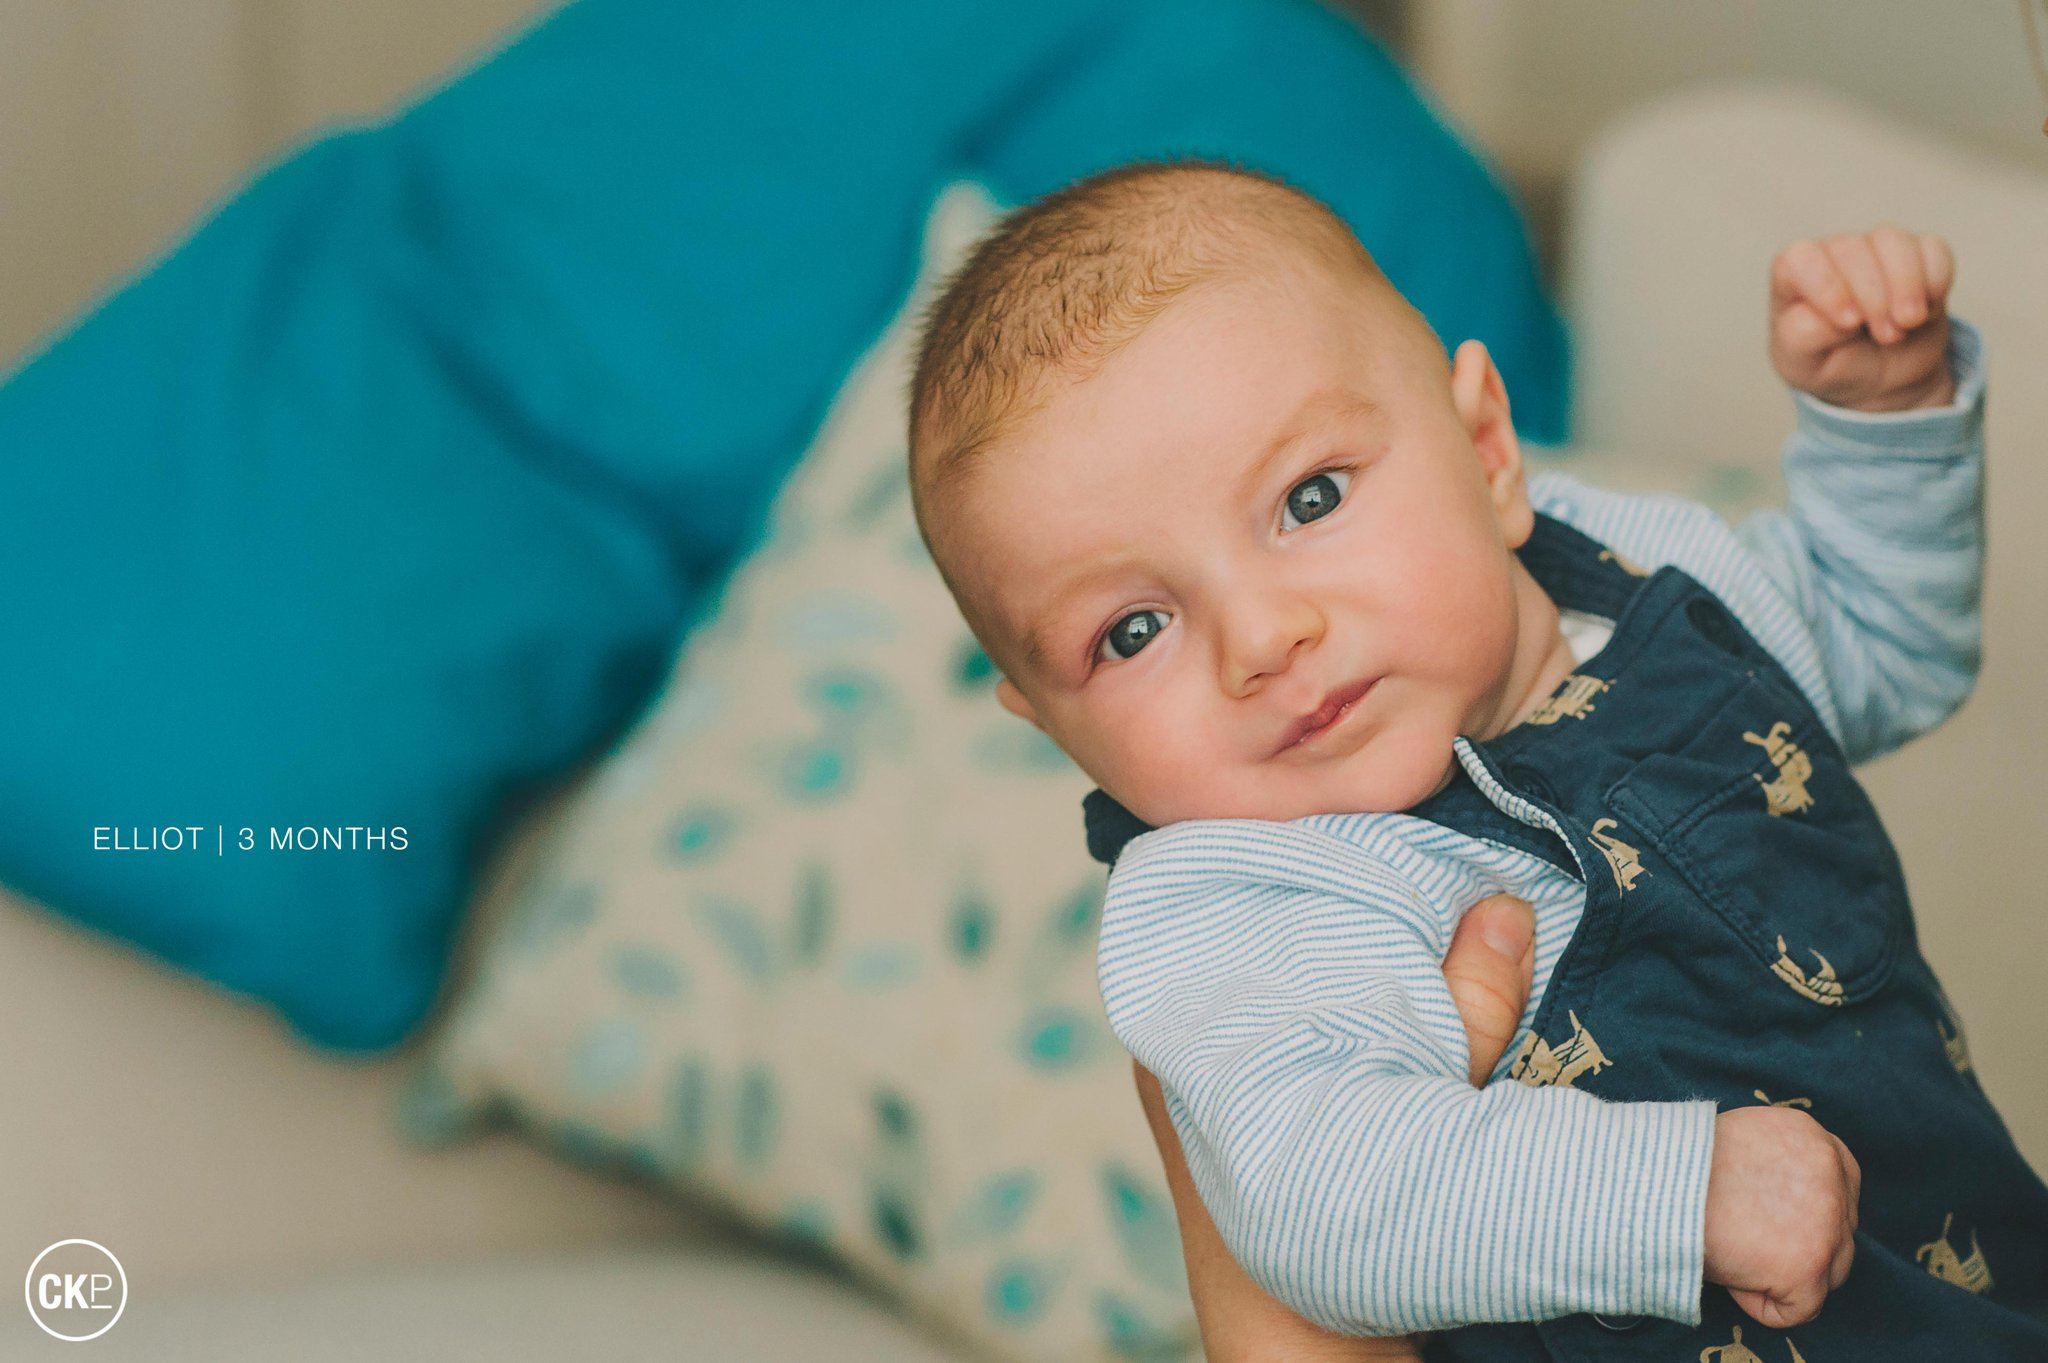 London Newborn Family Lifestyle Portrait Copyright Charlotte Knee Photography_0001.jpg